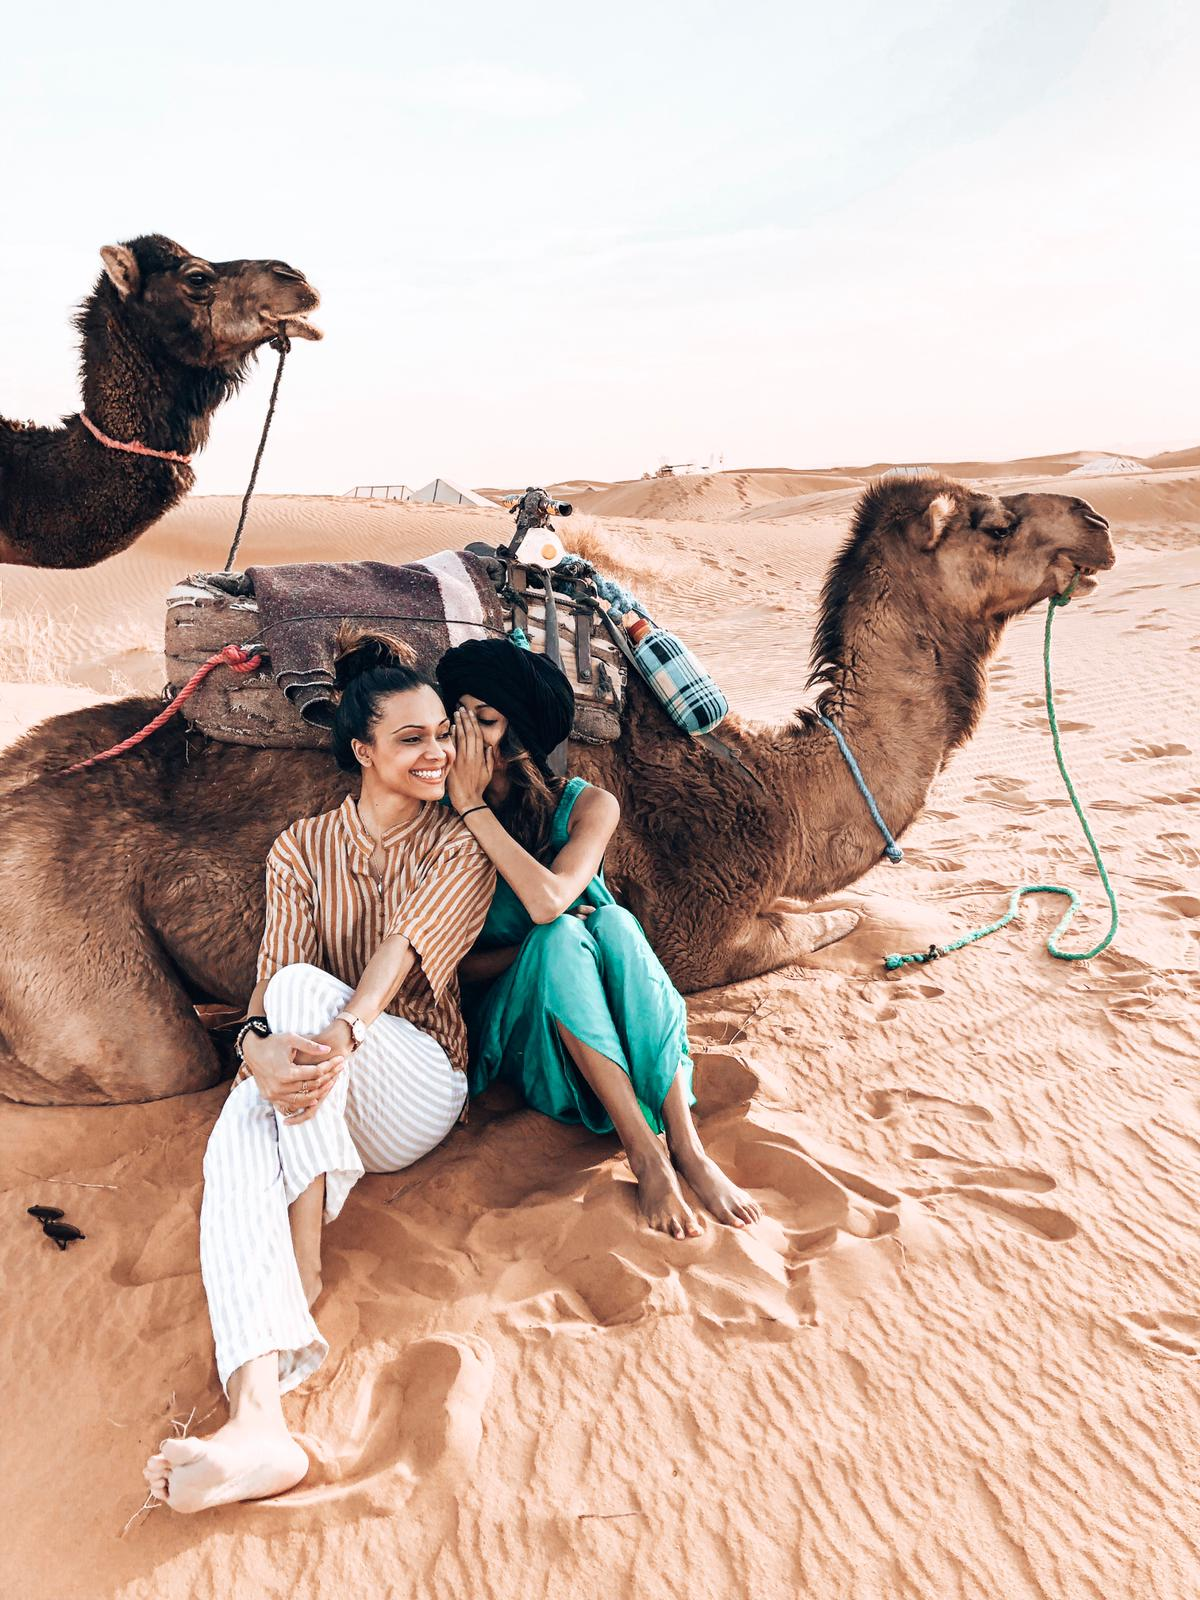 September 30 - October 7, 2019 - 7 Nights / 8 DaysGroup Size: 16*1 spot left*Marrakech is a girl's dream come true. From roaming the colourful Souk markets to bathing in a traditional hammam, we can't wait to take you there!Our trip is made to indulge you in the Moroccan culture and have your soul filled with Moroccan memories. All our tours are paired with experienced local guides to keep everything as authentic as possible.All dining experiences will be paired between dining at the private villa, curated spots in the Medina, along with other local food stops.Expect to have a day or two to relax and unwind at your own leisure where you can go shopping, enjoy a traditional hammam, or even select an add on experience such as a Hot Air Balloon ride.Here's a little look into what you can expect:*Private Villa Accommodations, Sunset Camel Trek, Star Gazing in our Luxury Camp in the Sahara Desert, Drive through the Atlas Mountains and more**An Experience and Adventure Packed Itinerary Customized with Authentic & Local Experiences*